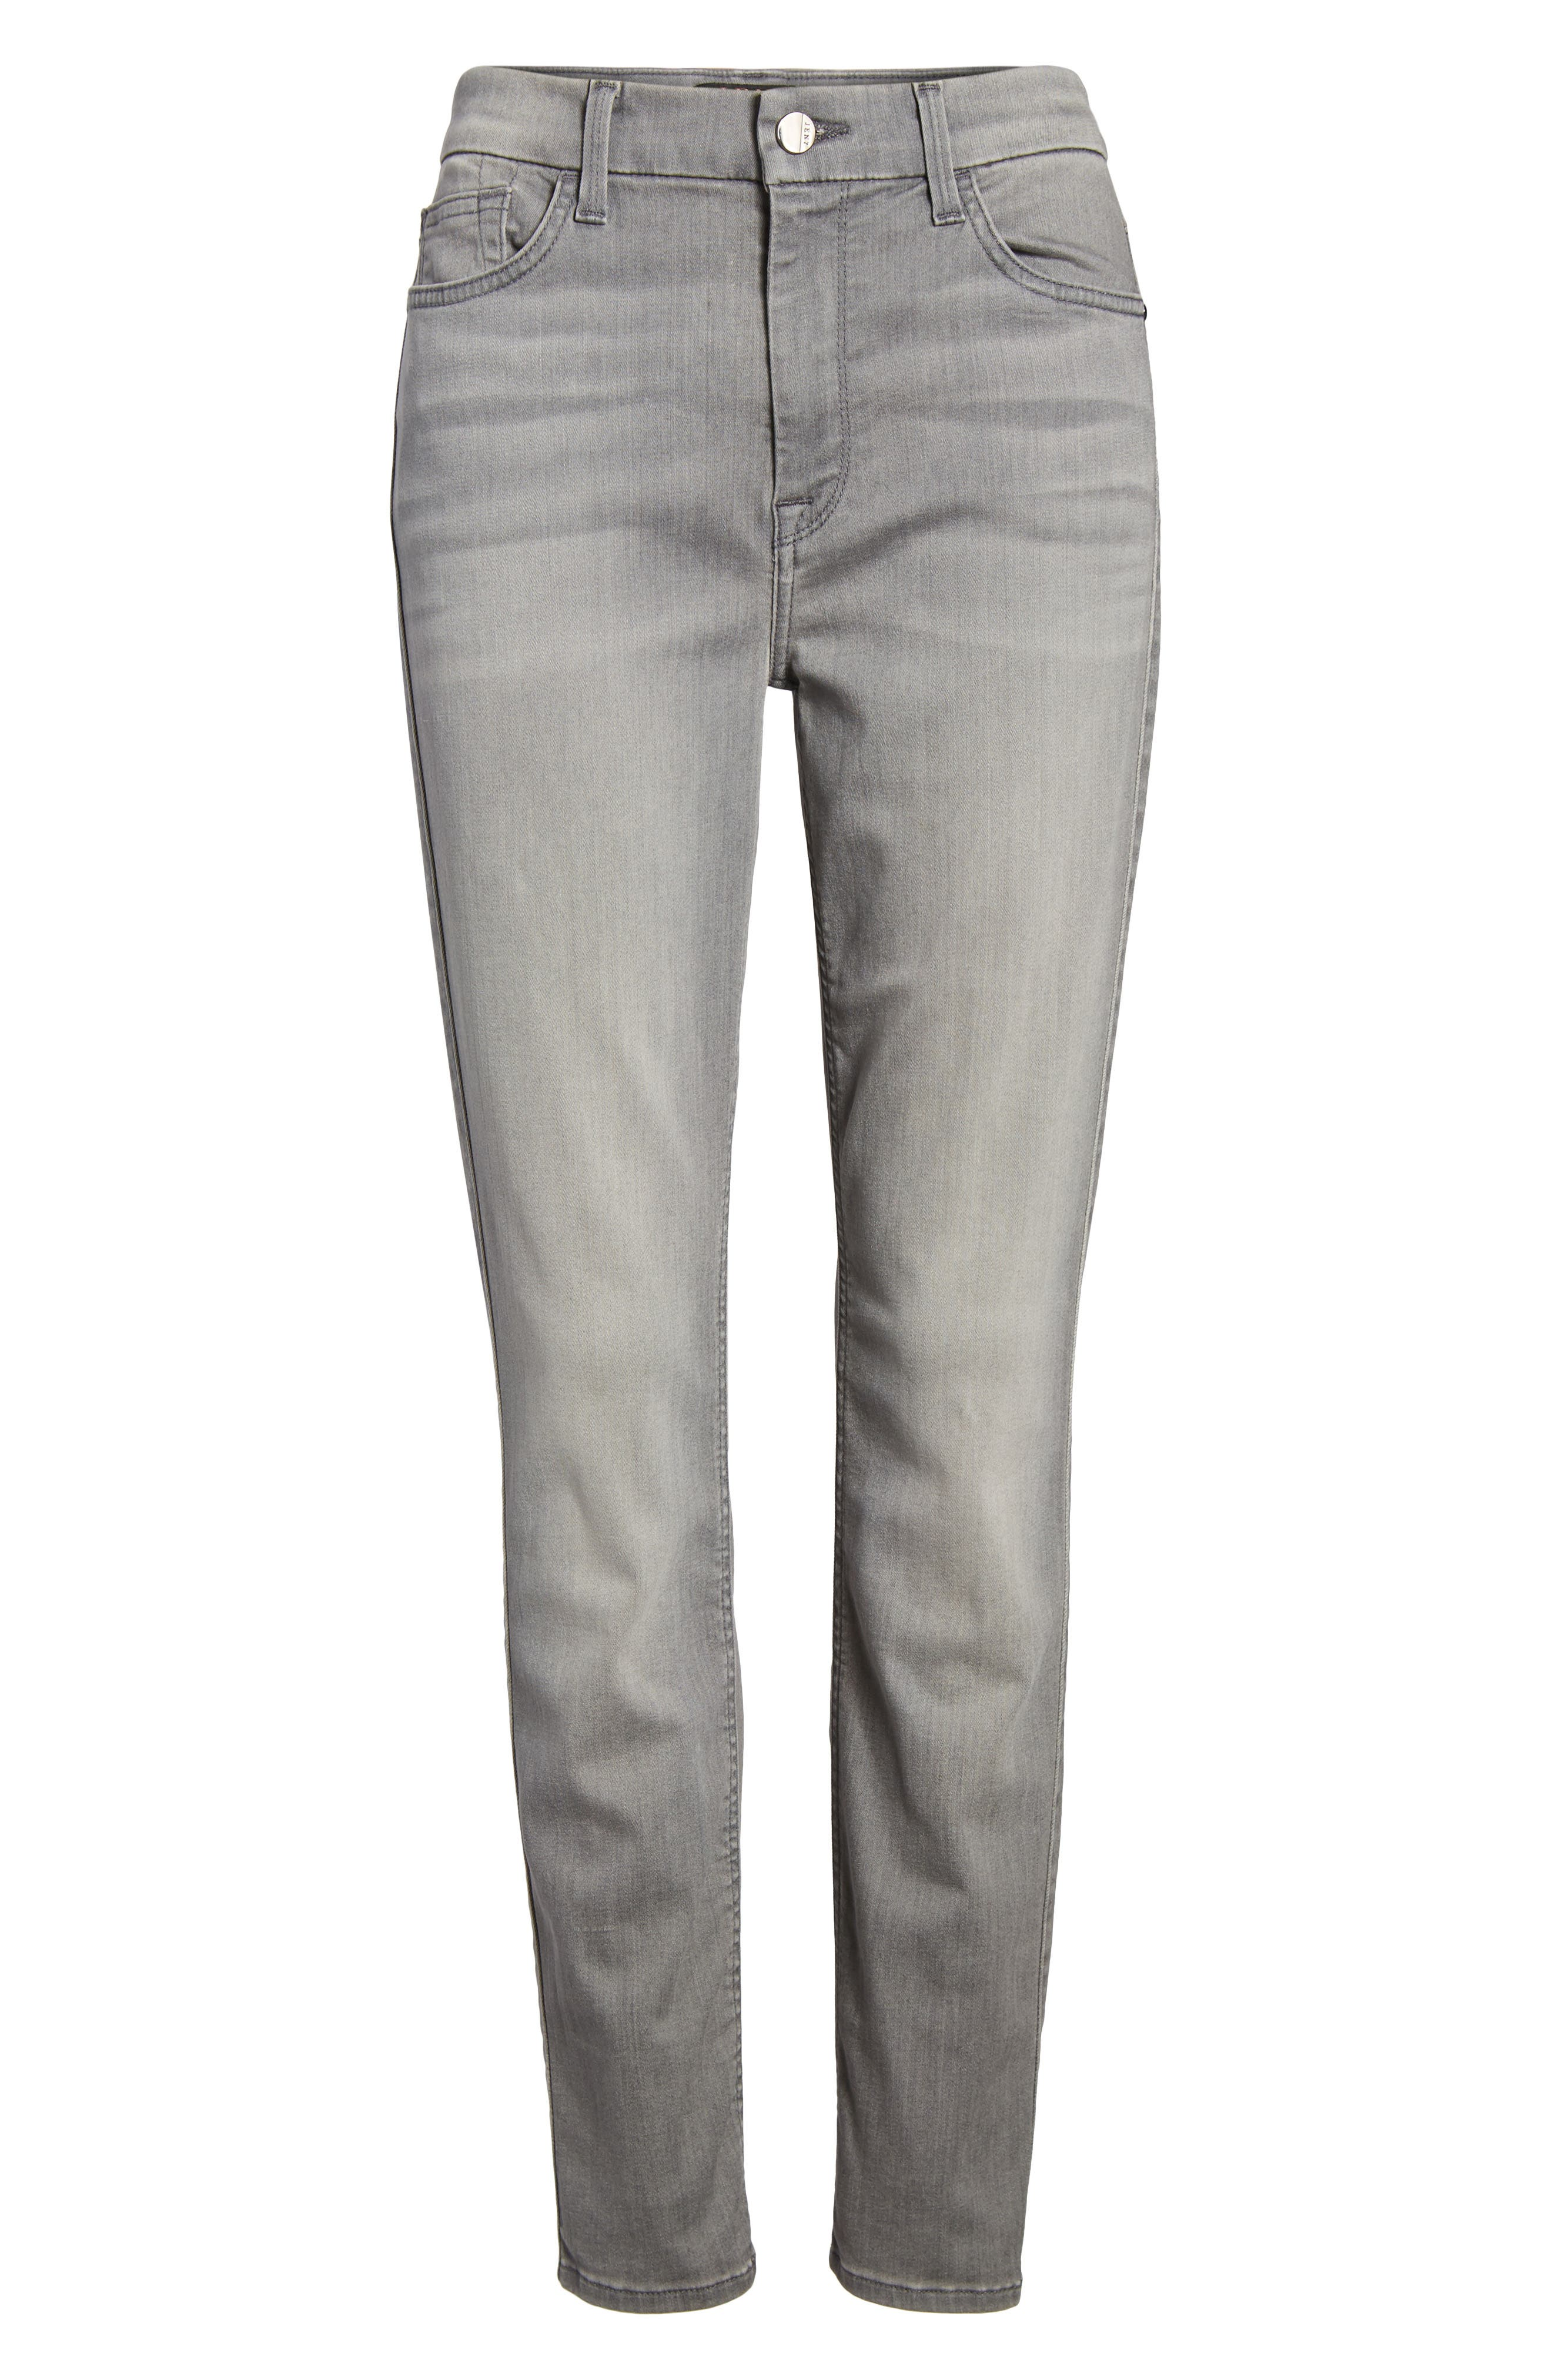 Stretch Ankle Skinny Jeans,                             Alternate thumbnail 6, color,                             RICHE TOUCH MARBLE GREY